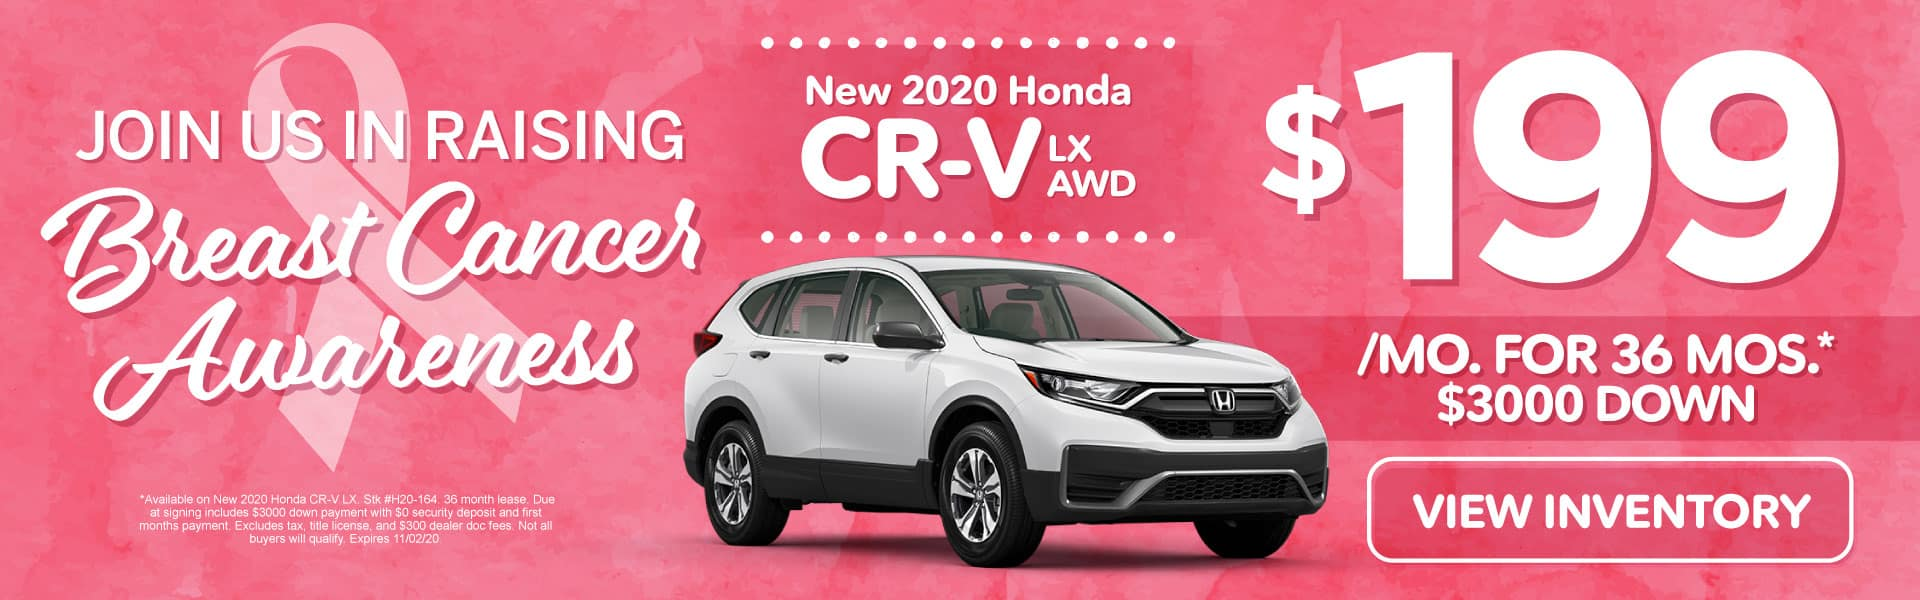 New 2020 Honda CR-V | Lease for $199 a month | Click to View Inventory